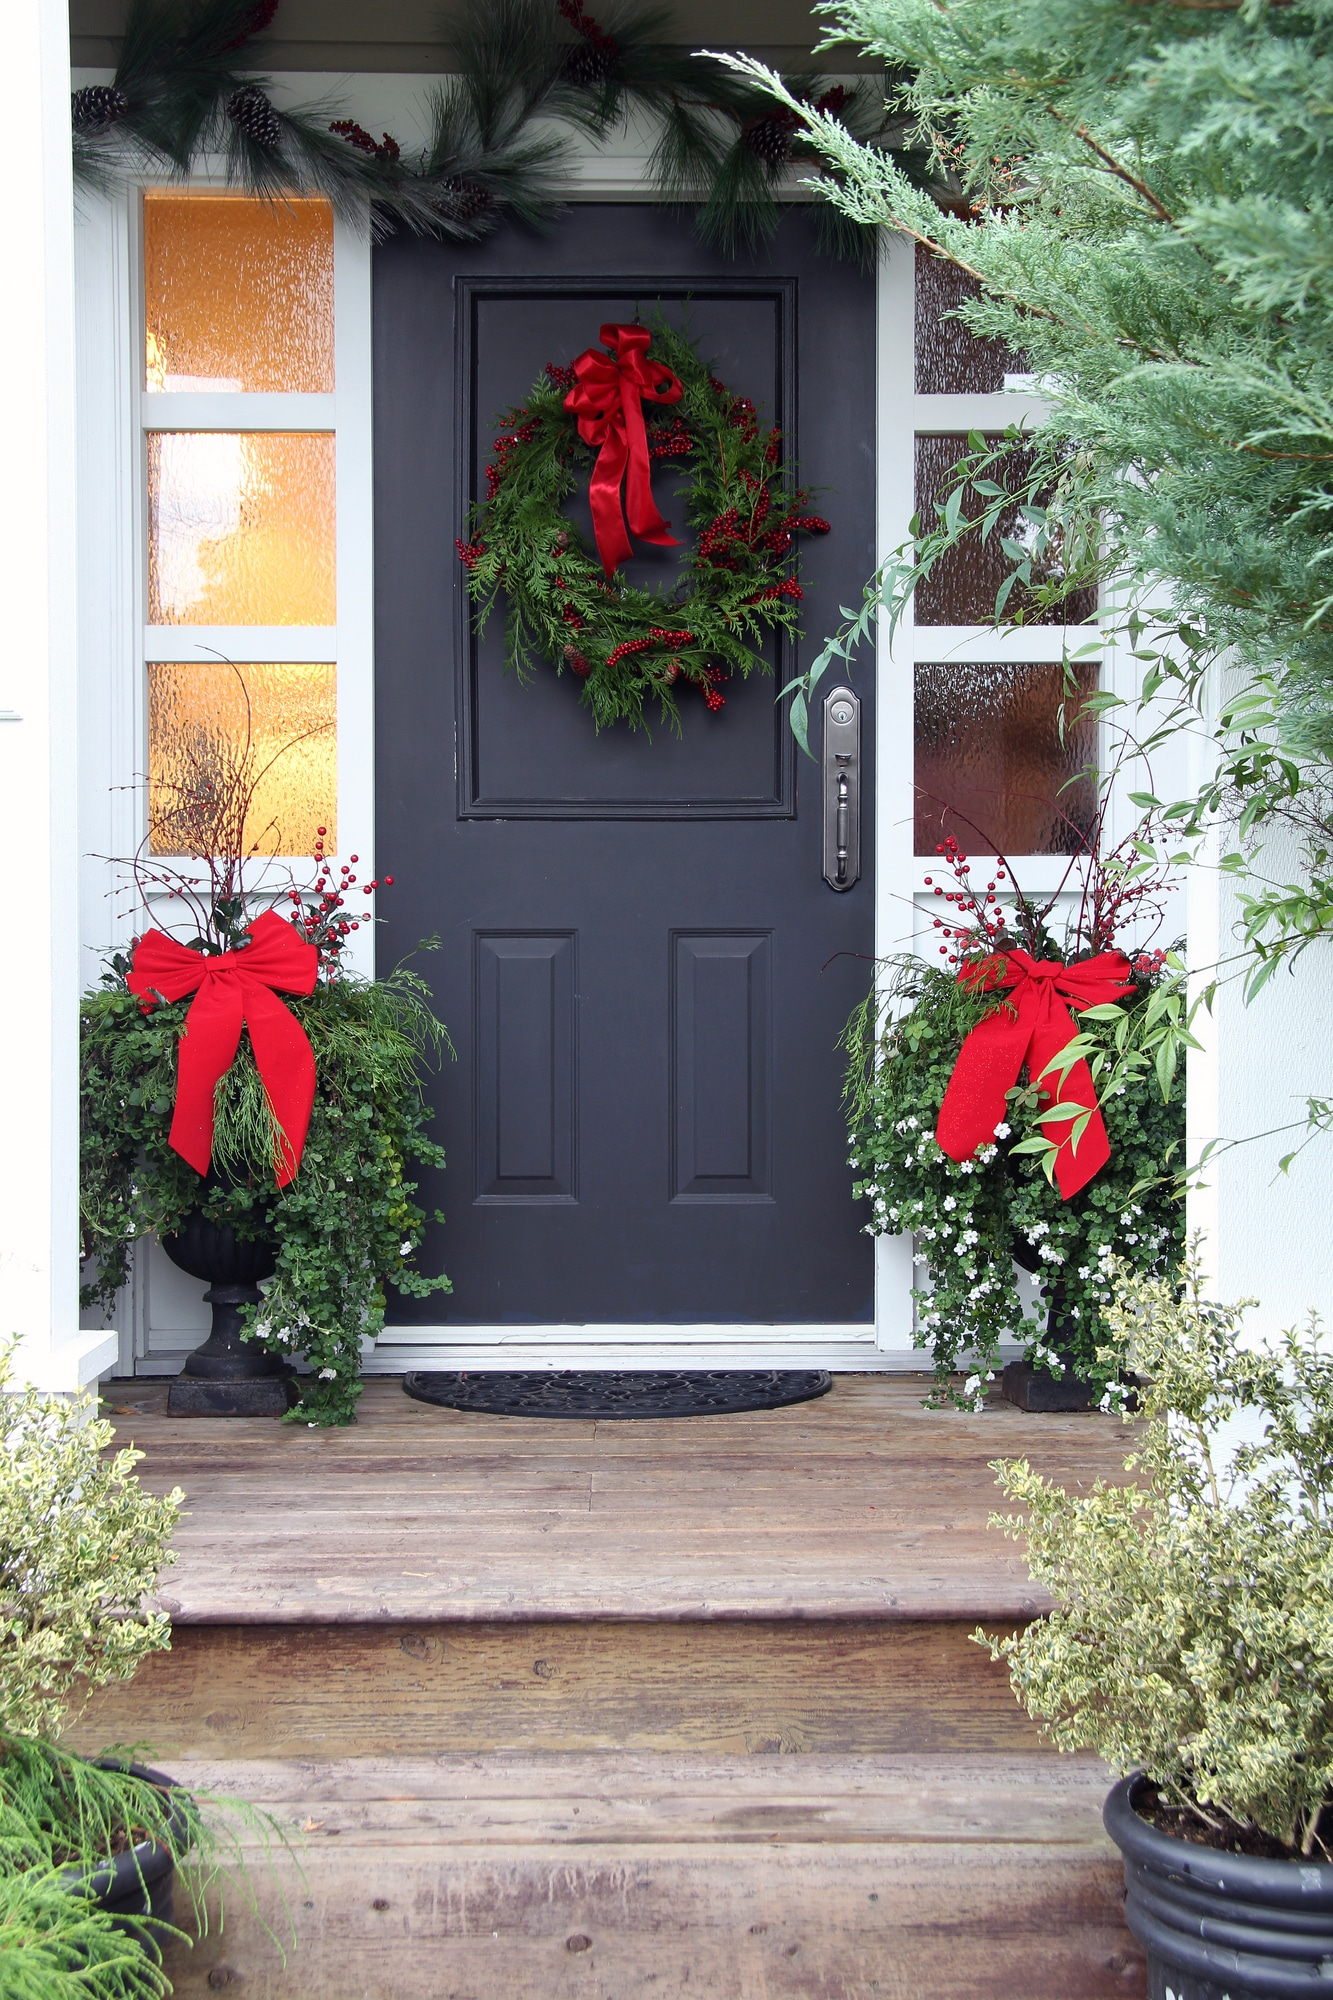 6 Easy Winter Home Improvement Projects on a Budget